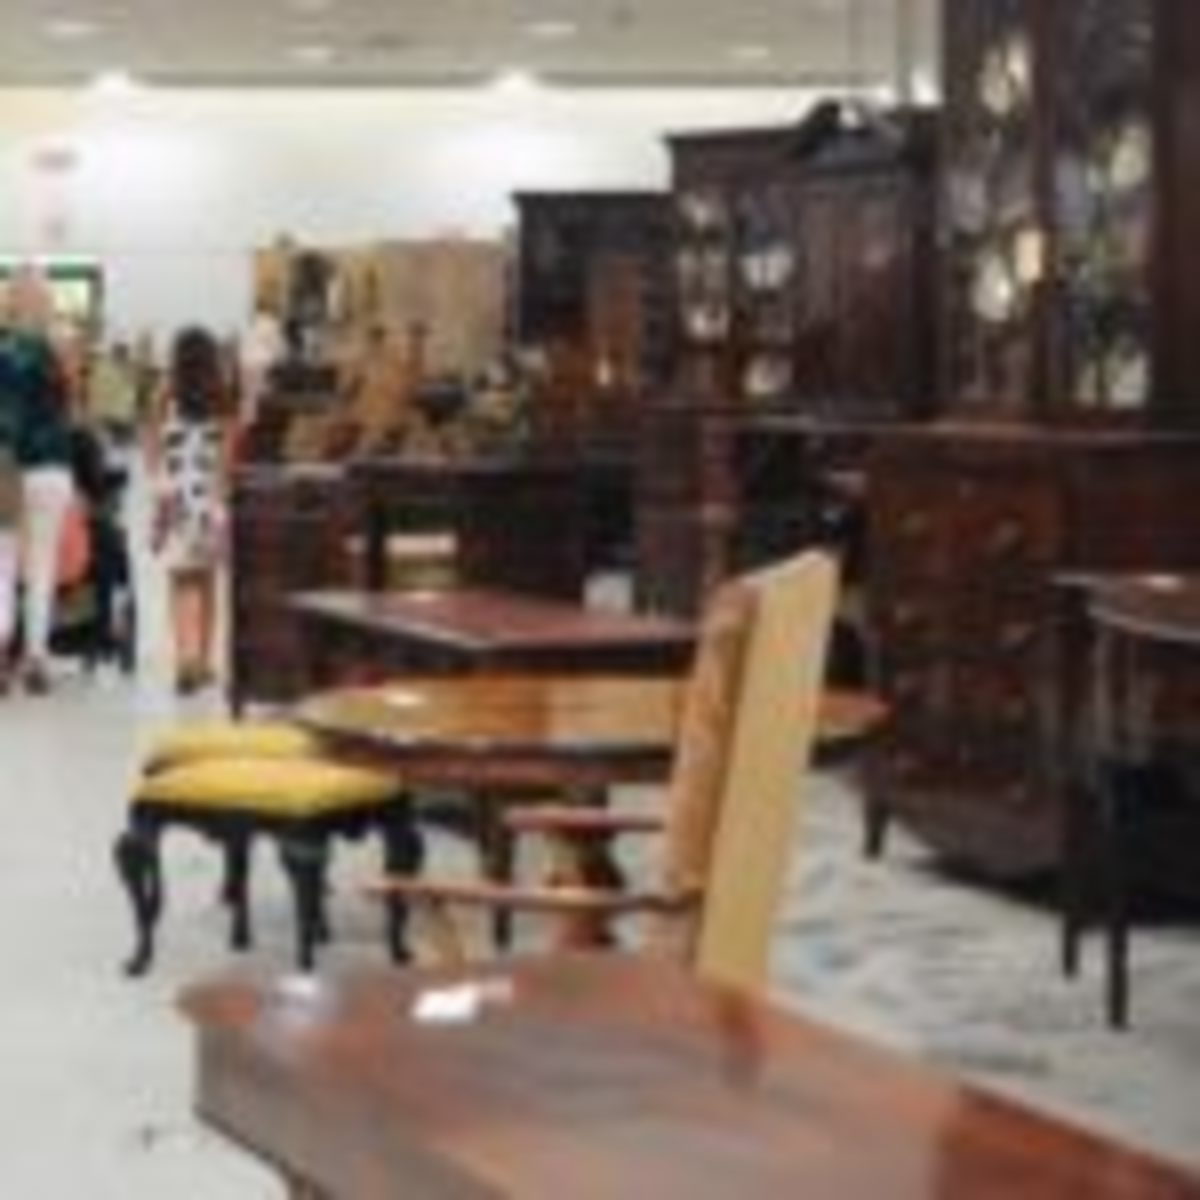 Customers browse through rows and rows of antique furniture at Scott Antique Markets in Atlanta.